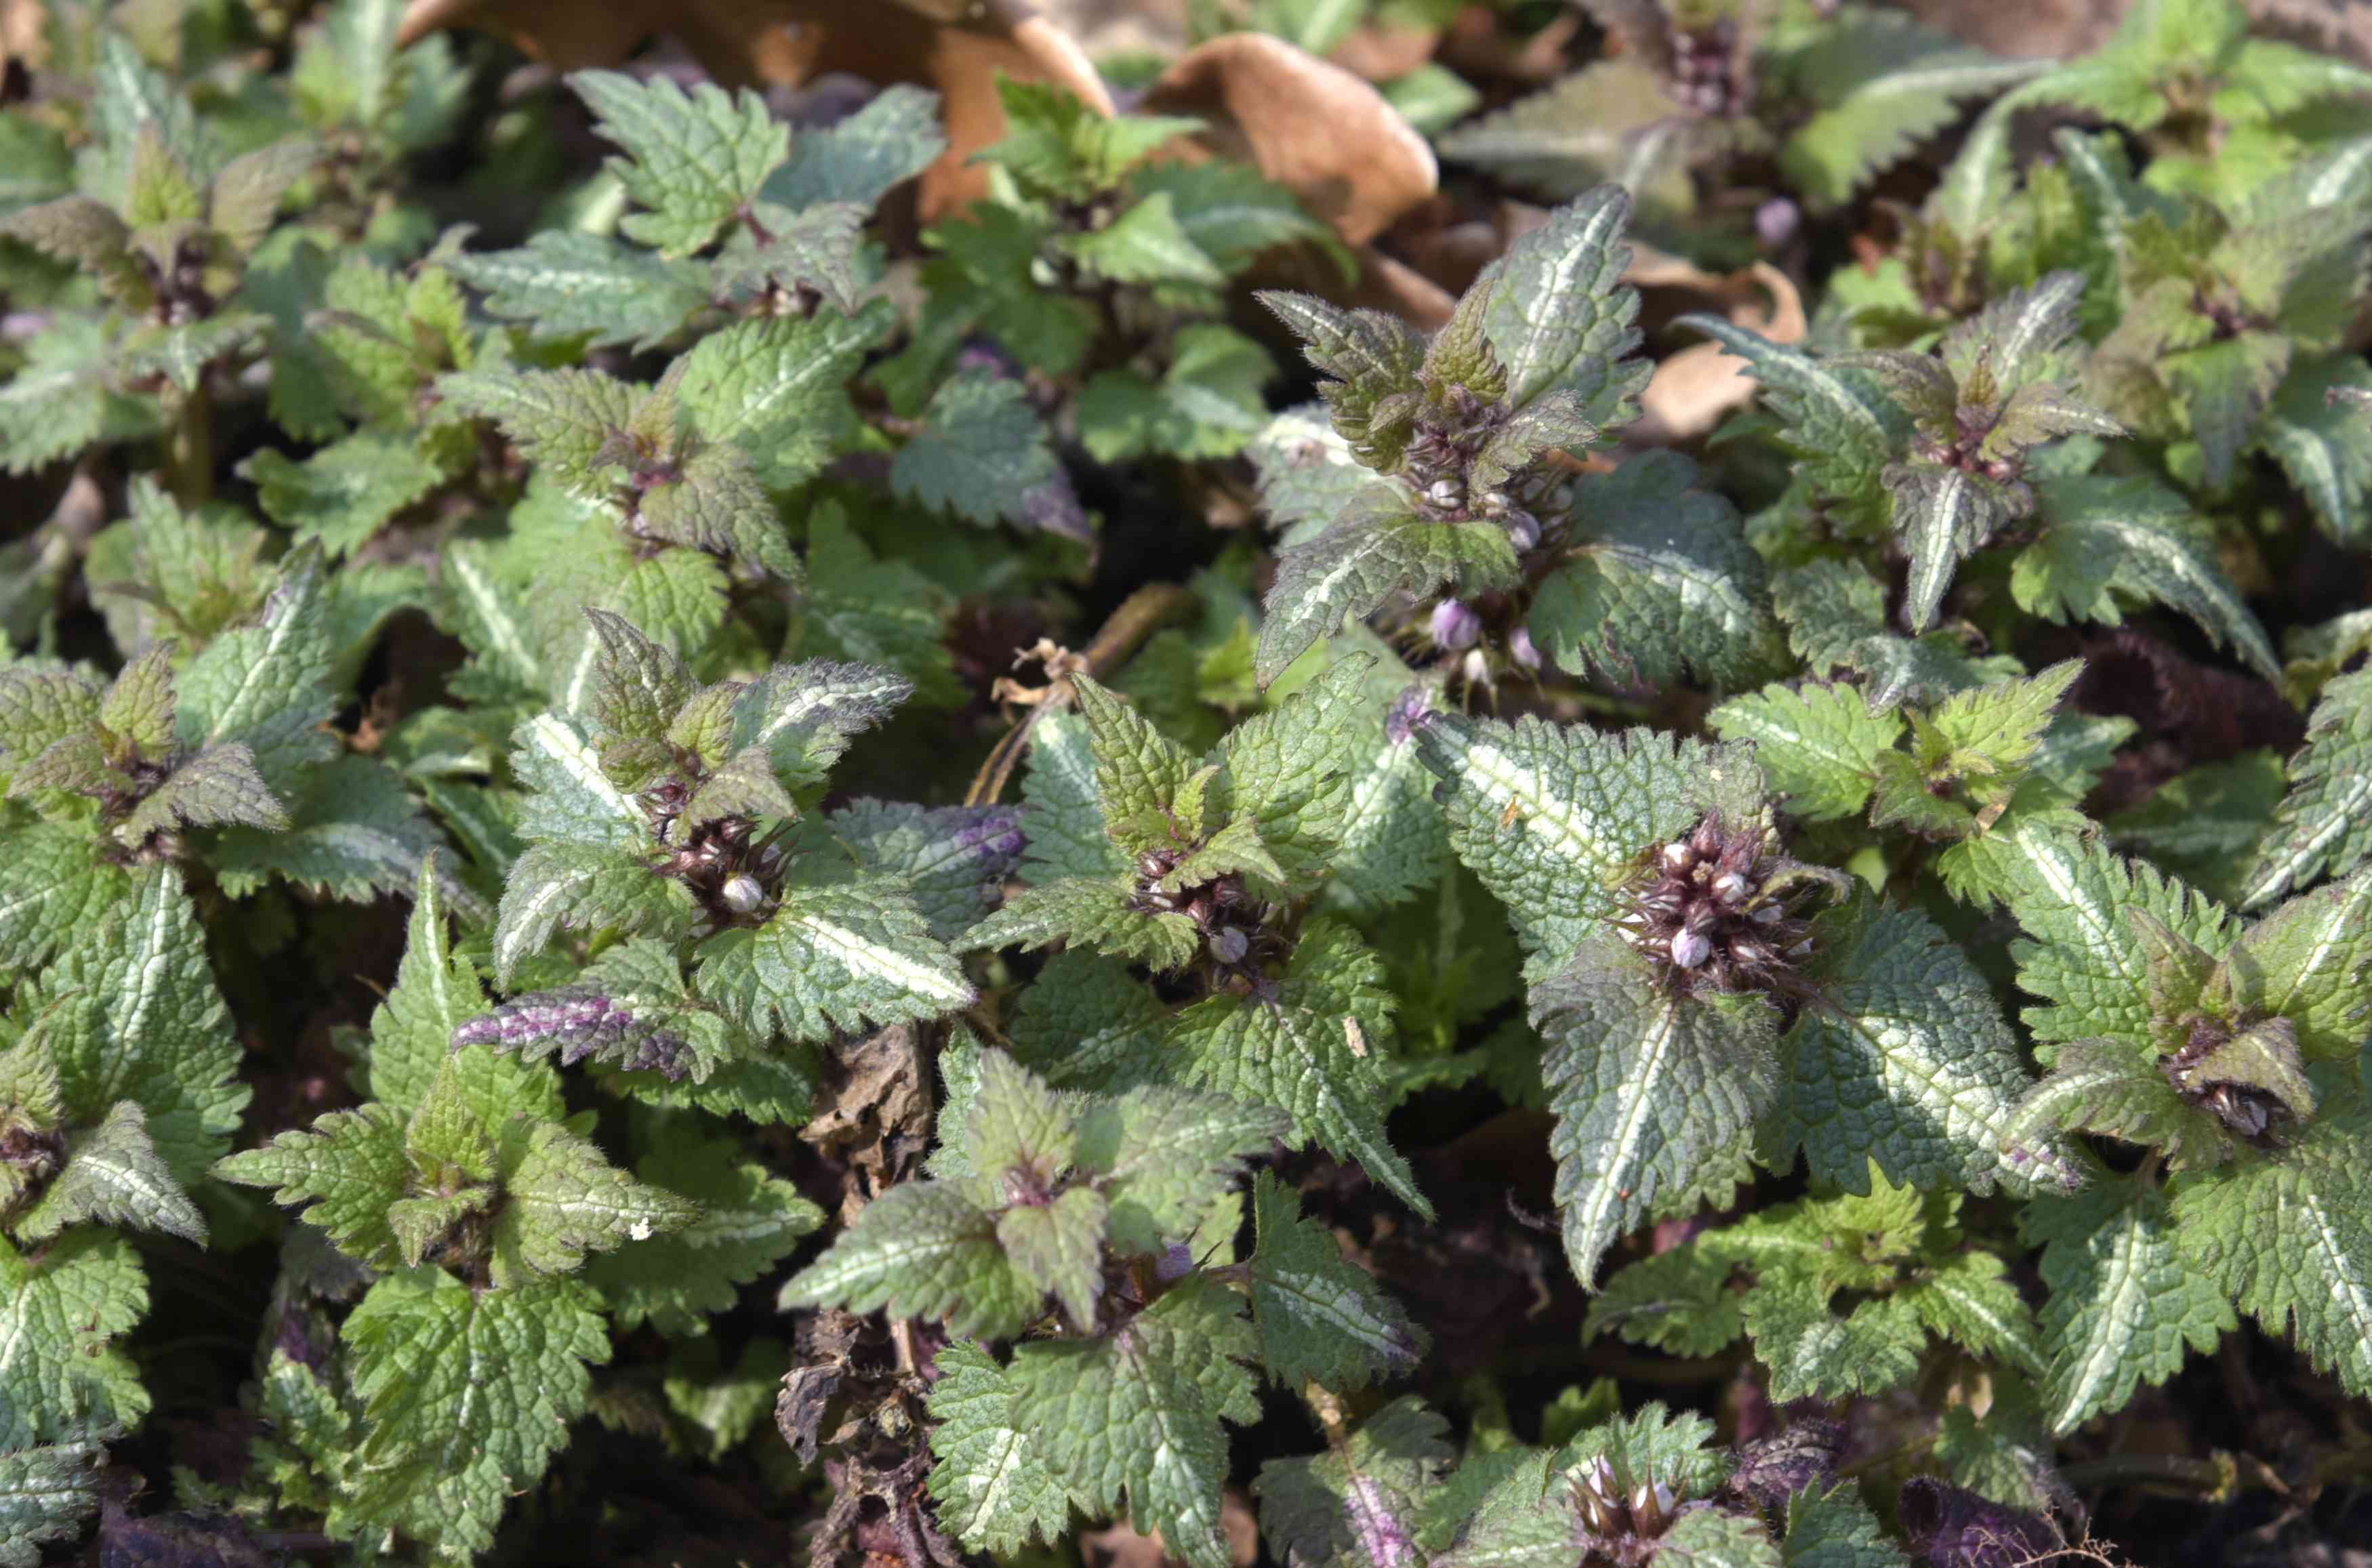 Spotted dead nettle plant with silvery-green leaves and buds on top